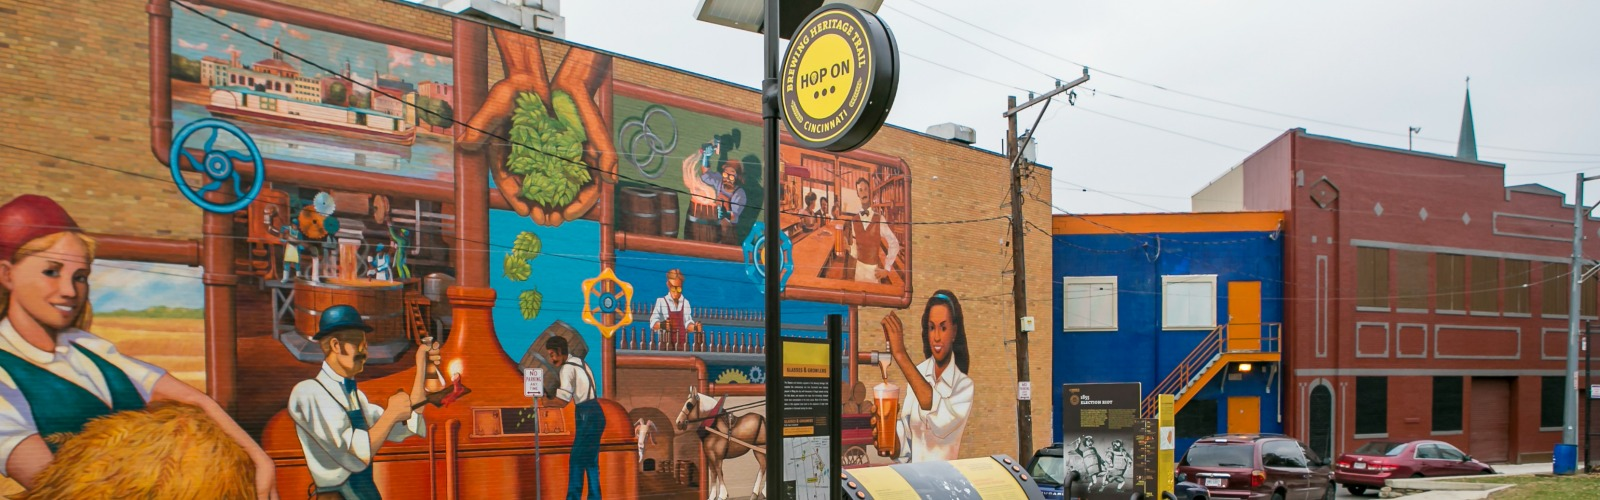 The Brewing Heritage Trail in Over-the-Rhine <span class=&apos;image-credits&apos;>Provided</span>